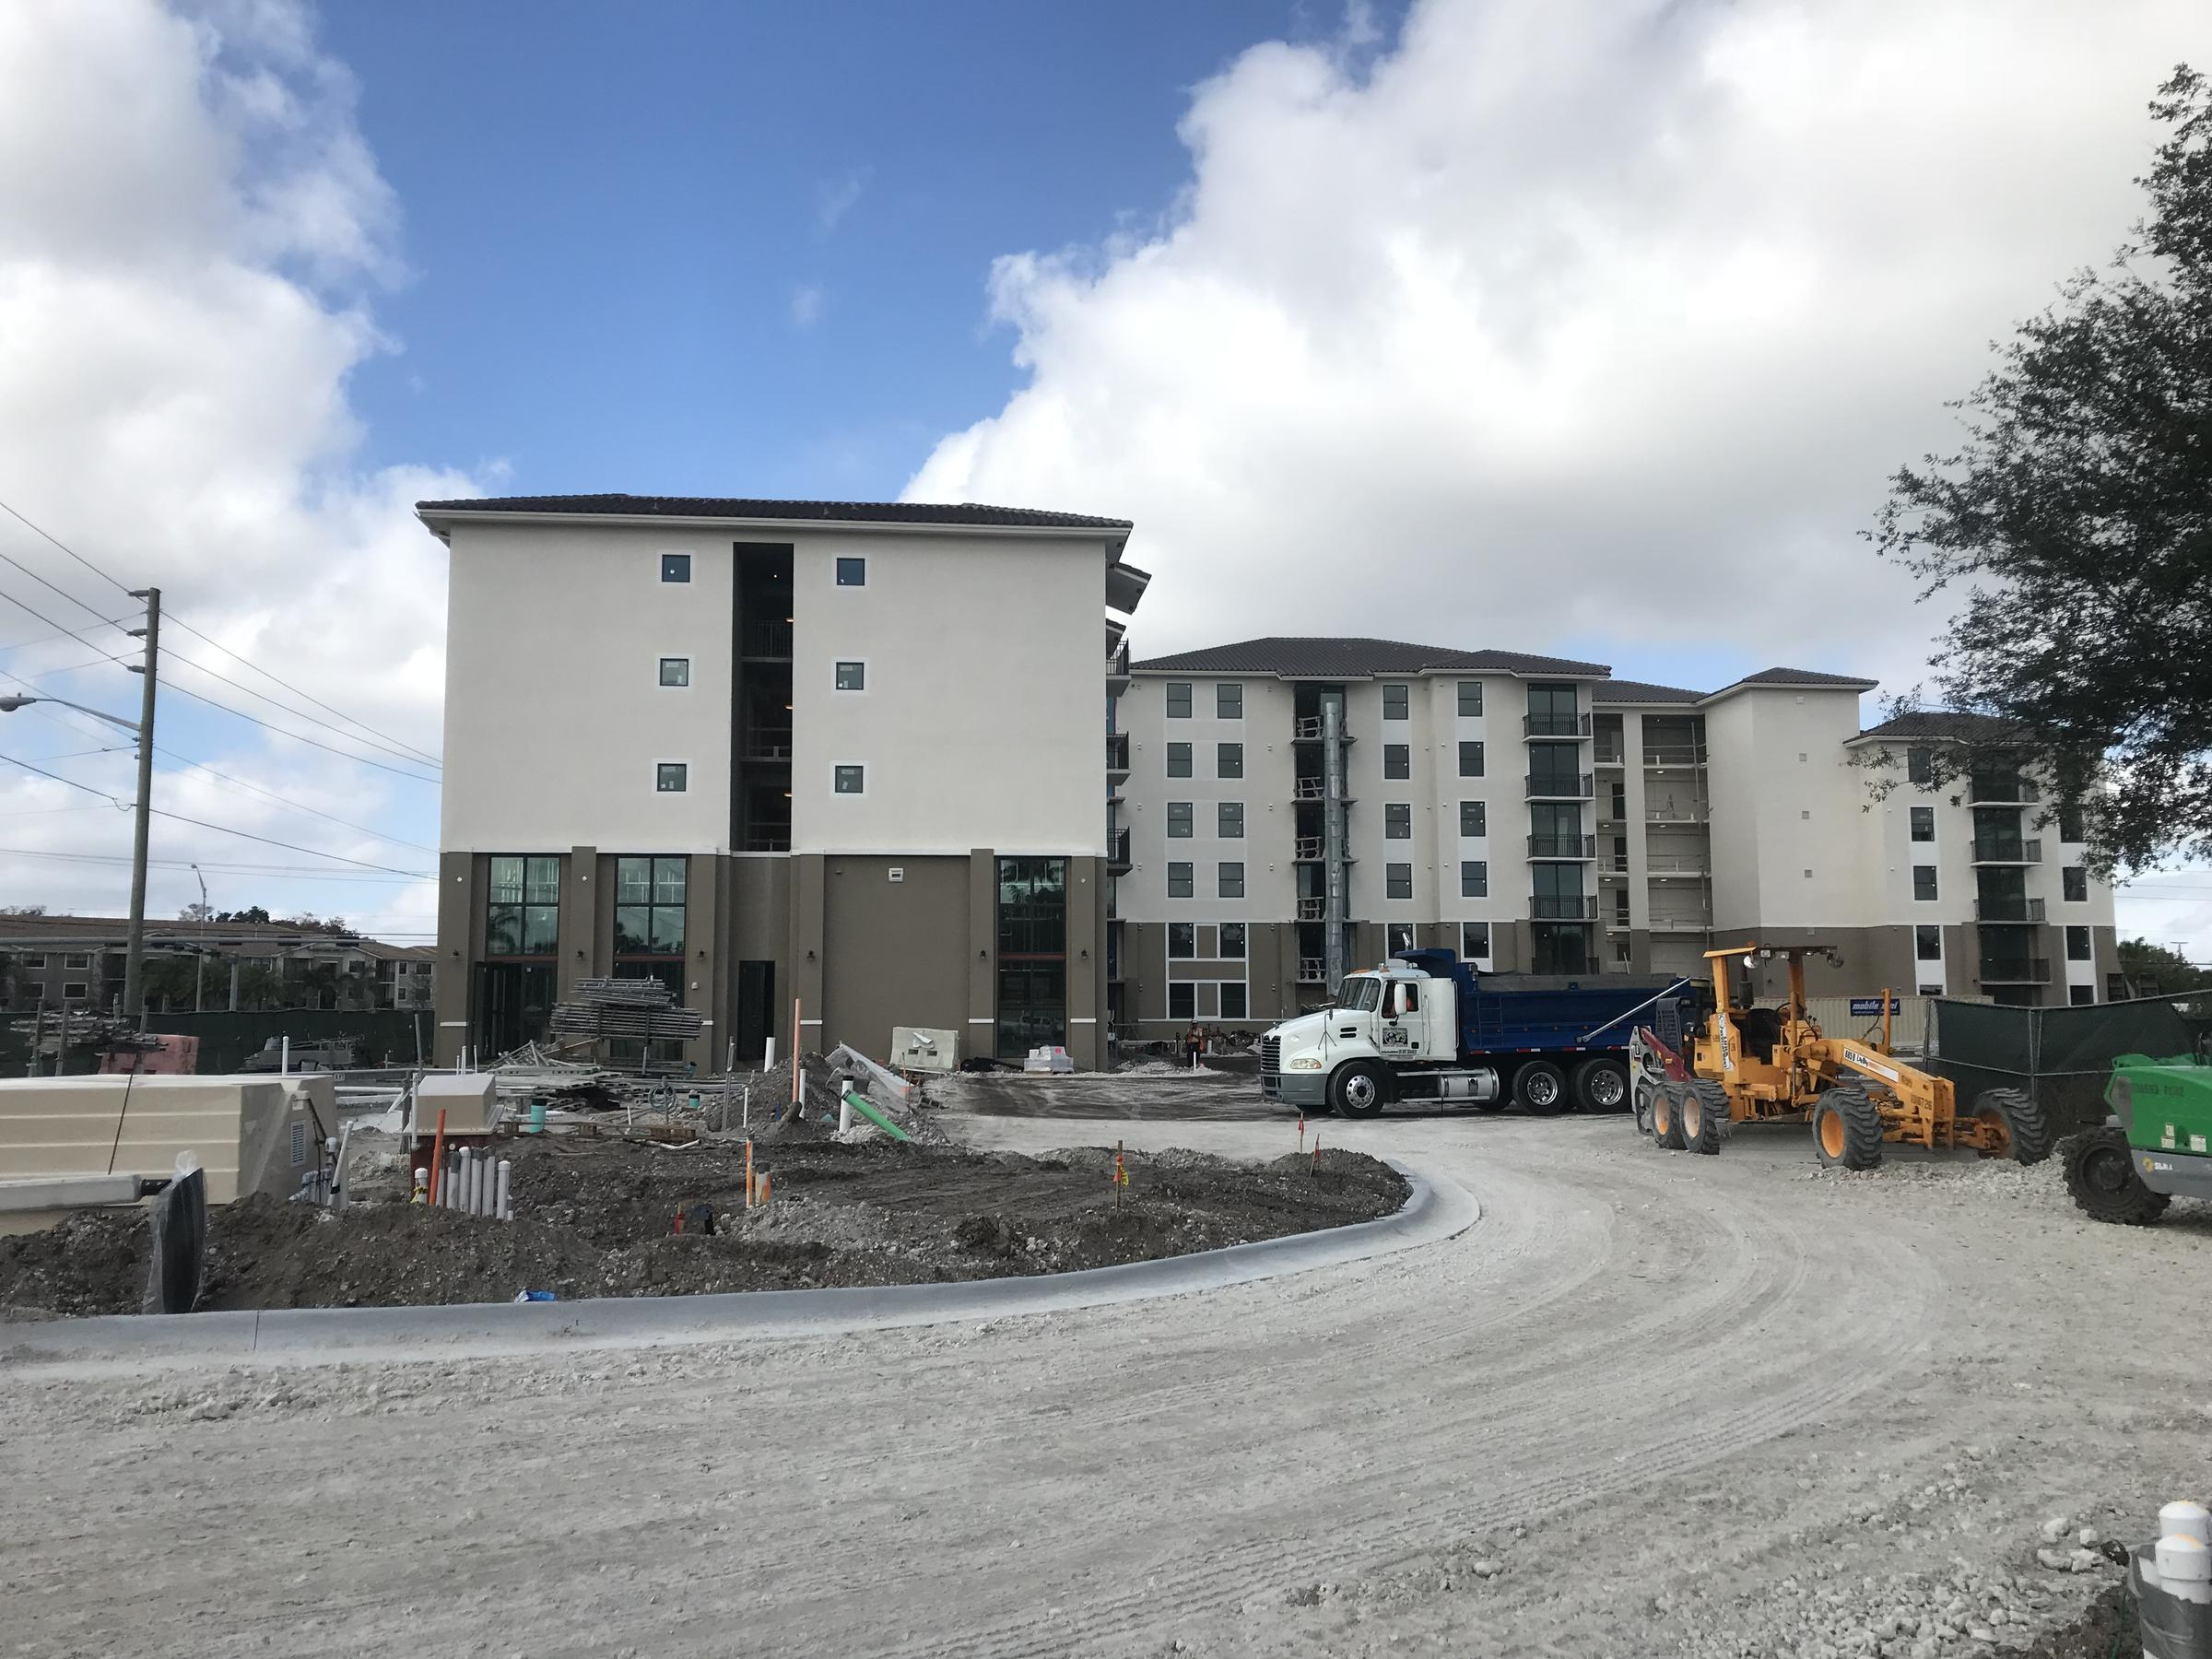 Affordable housing for older adults is going up in south florida arbor view senior living apartments are open for anyone age 55 and older to apply to live there publicscrutiny Choice Image